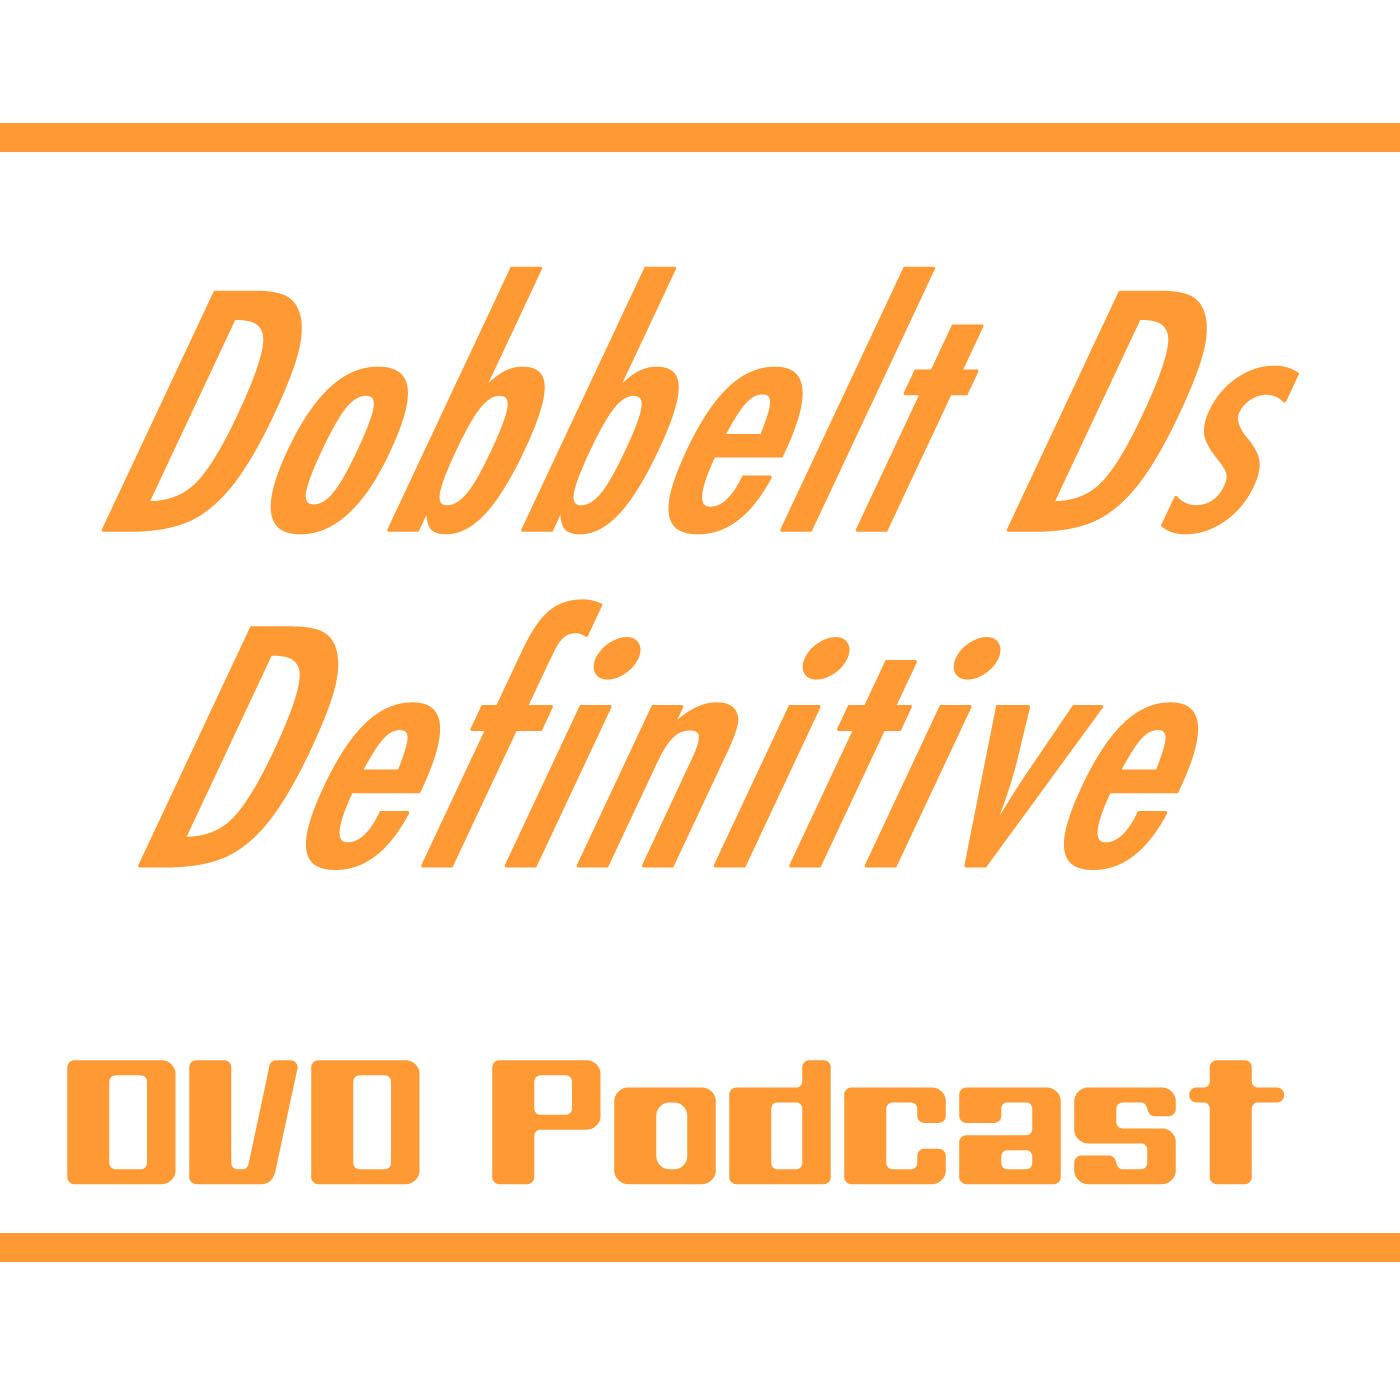 Double D's Definitive DVD Podcast - Audio Commentaries